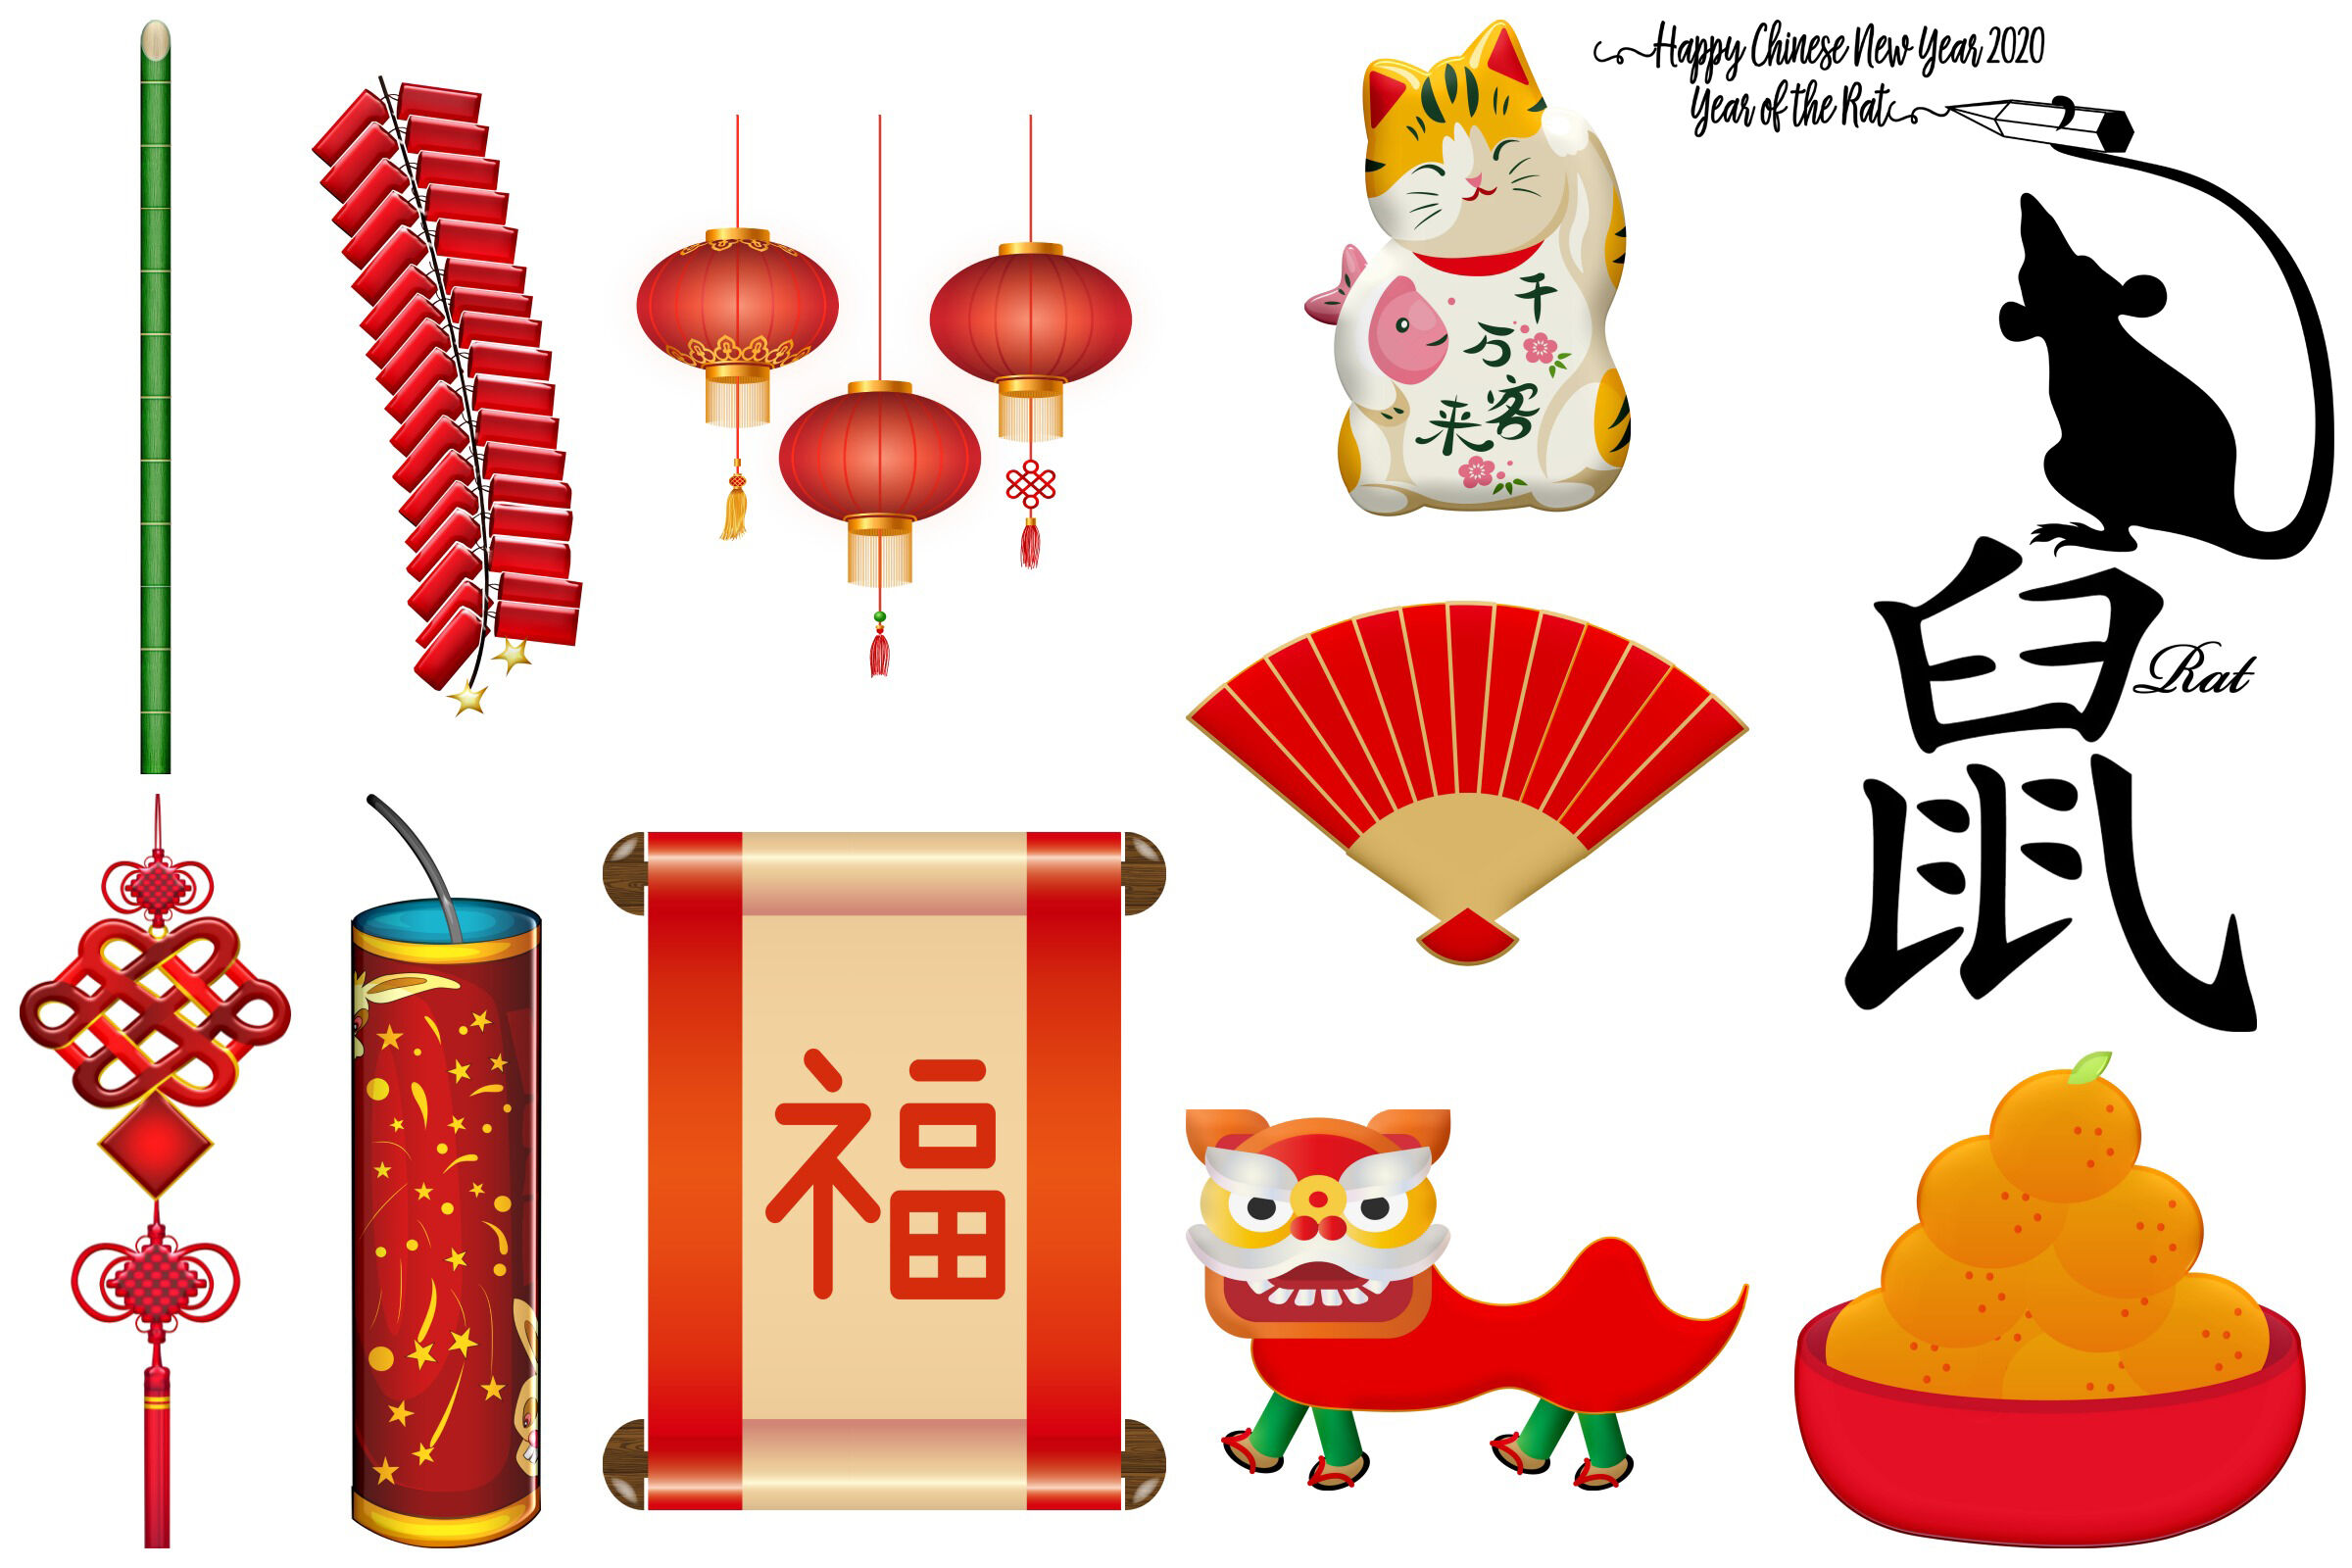 Chinese New Year 2020 Clip Art By Me and Ameliè ...